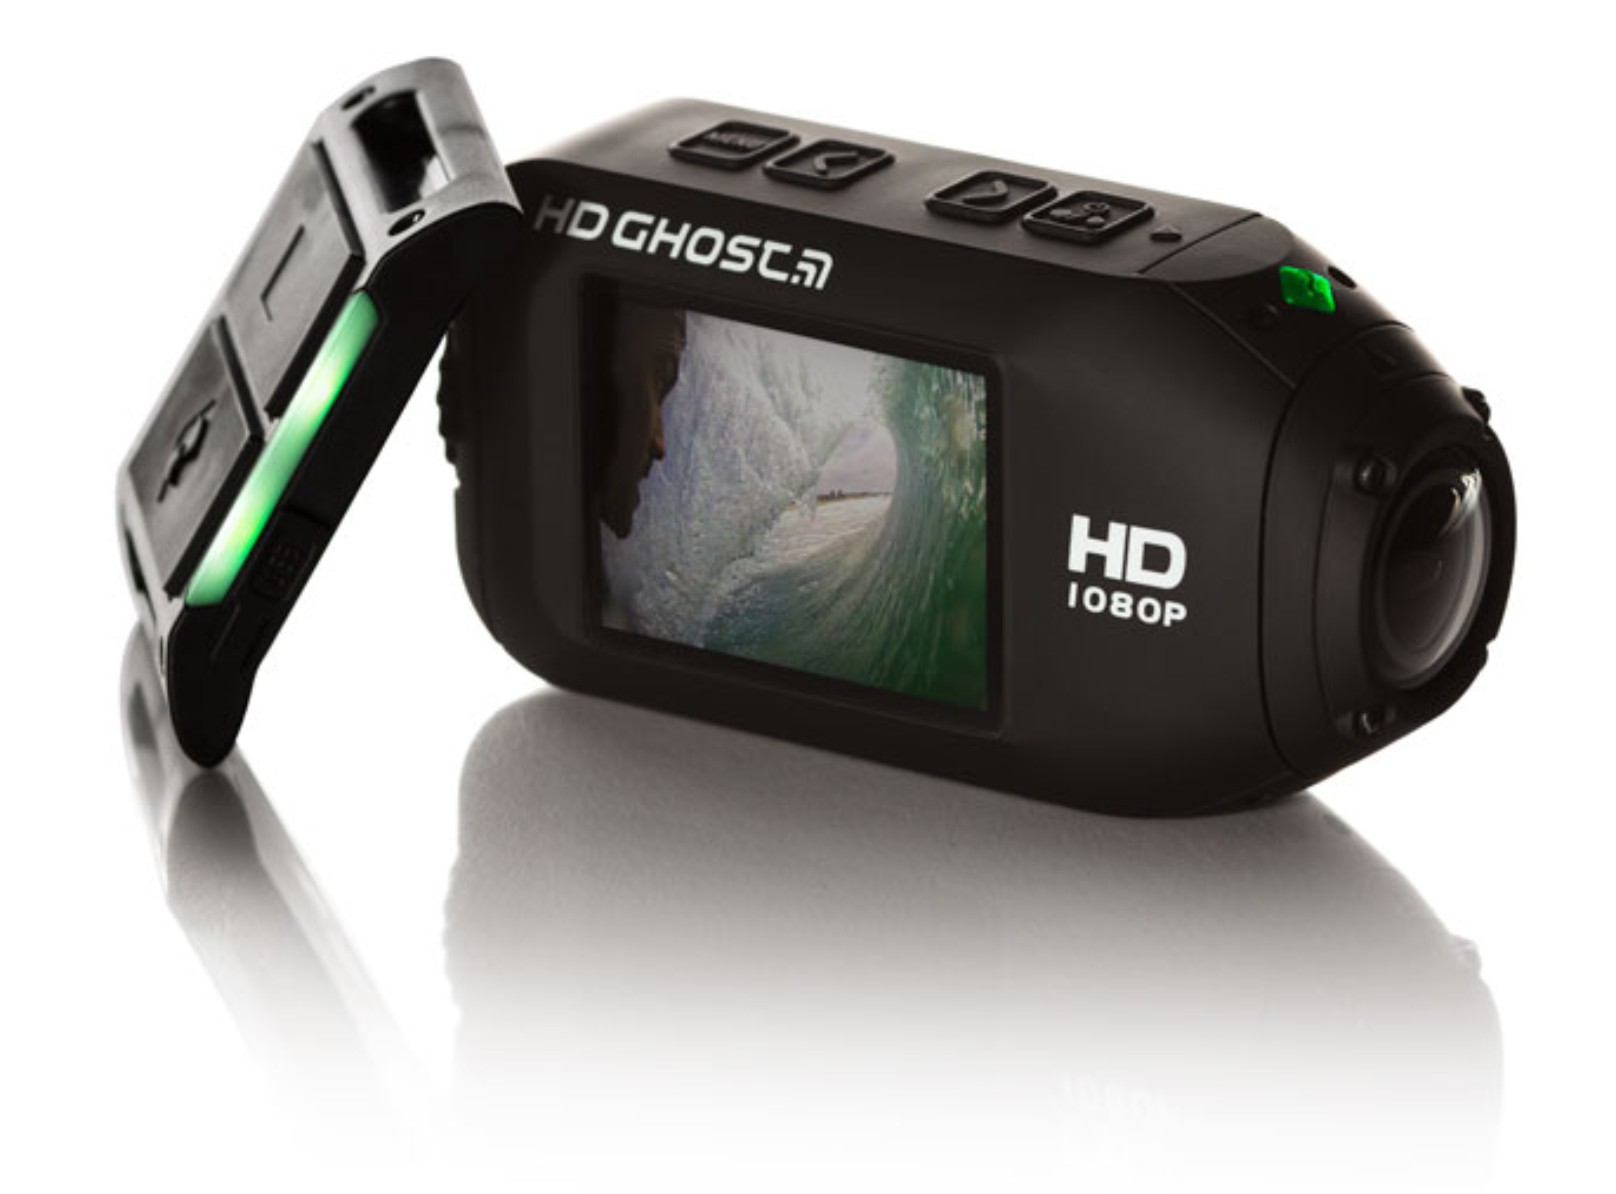 The Drift HD Ghost action camera is a must when it come to action sports